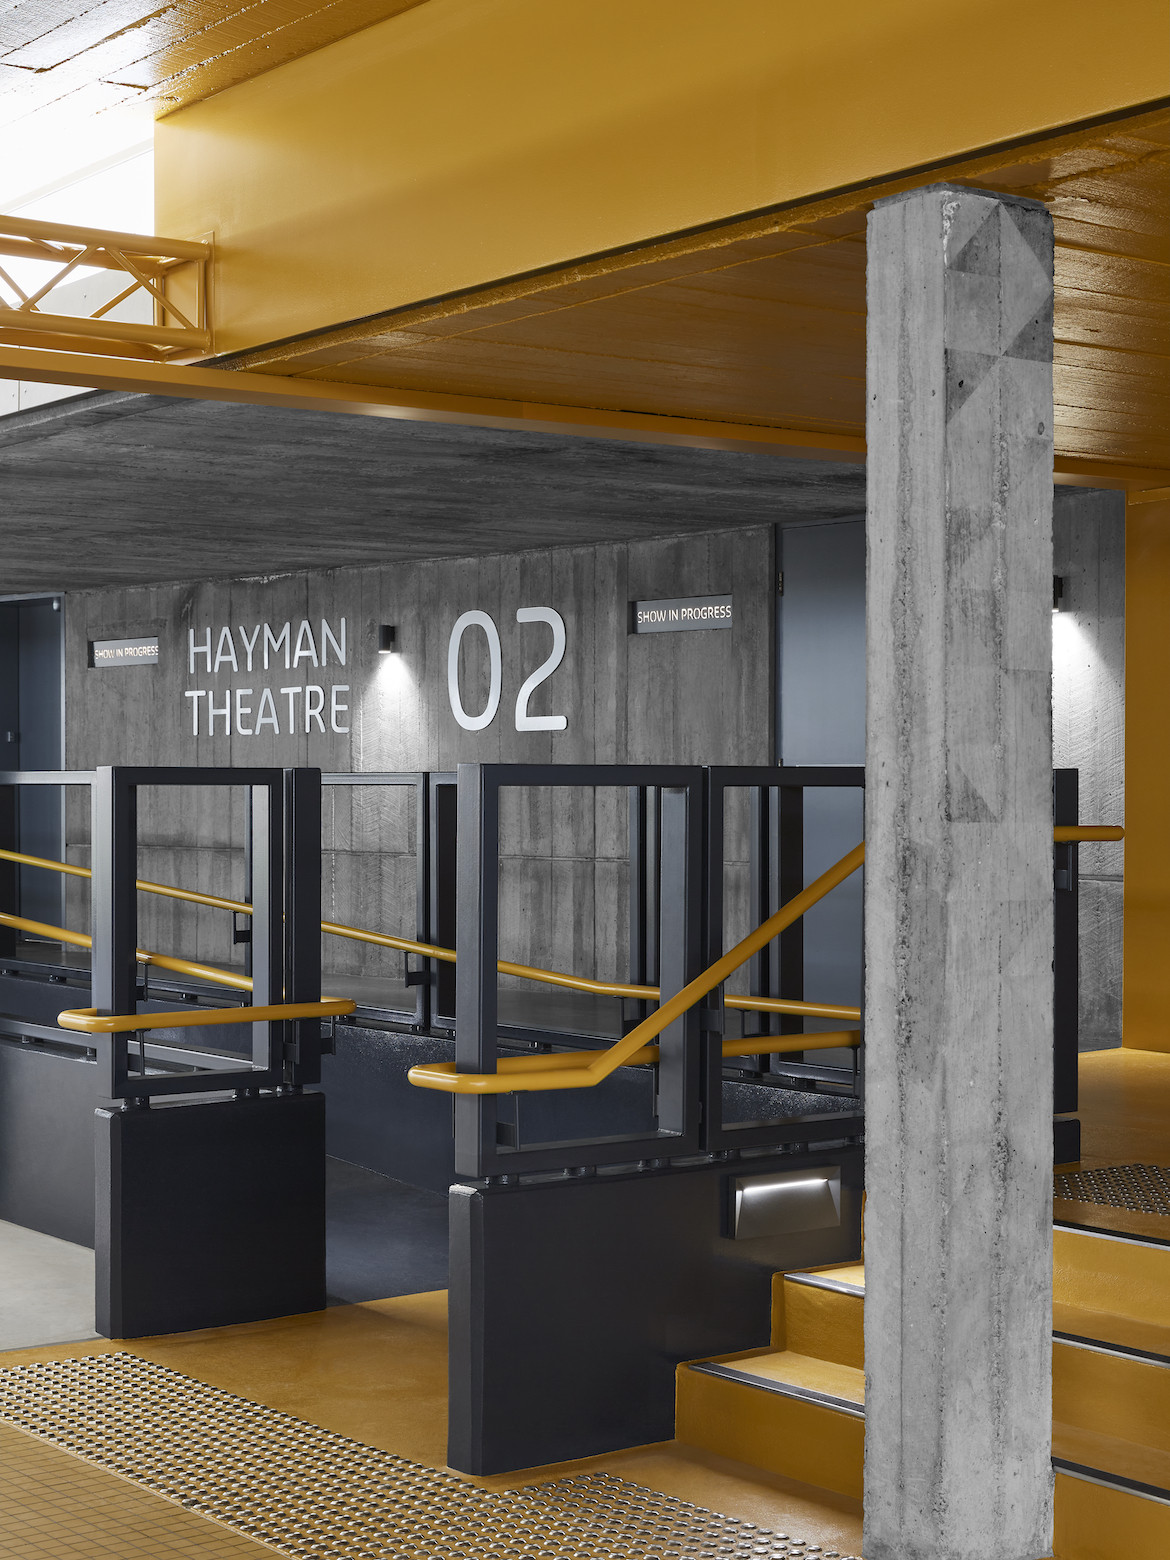 Yellow roof, flooring and accents on a grey background of the Hayman Theatre.